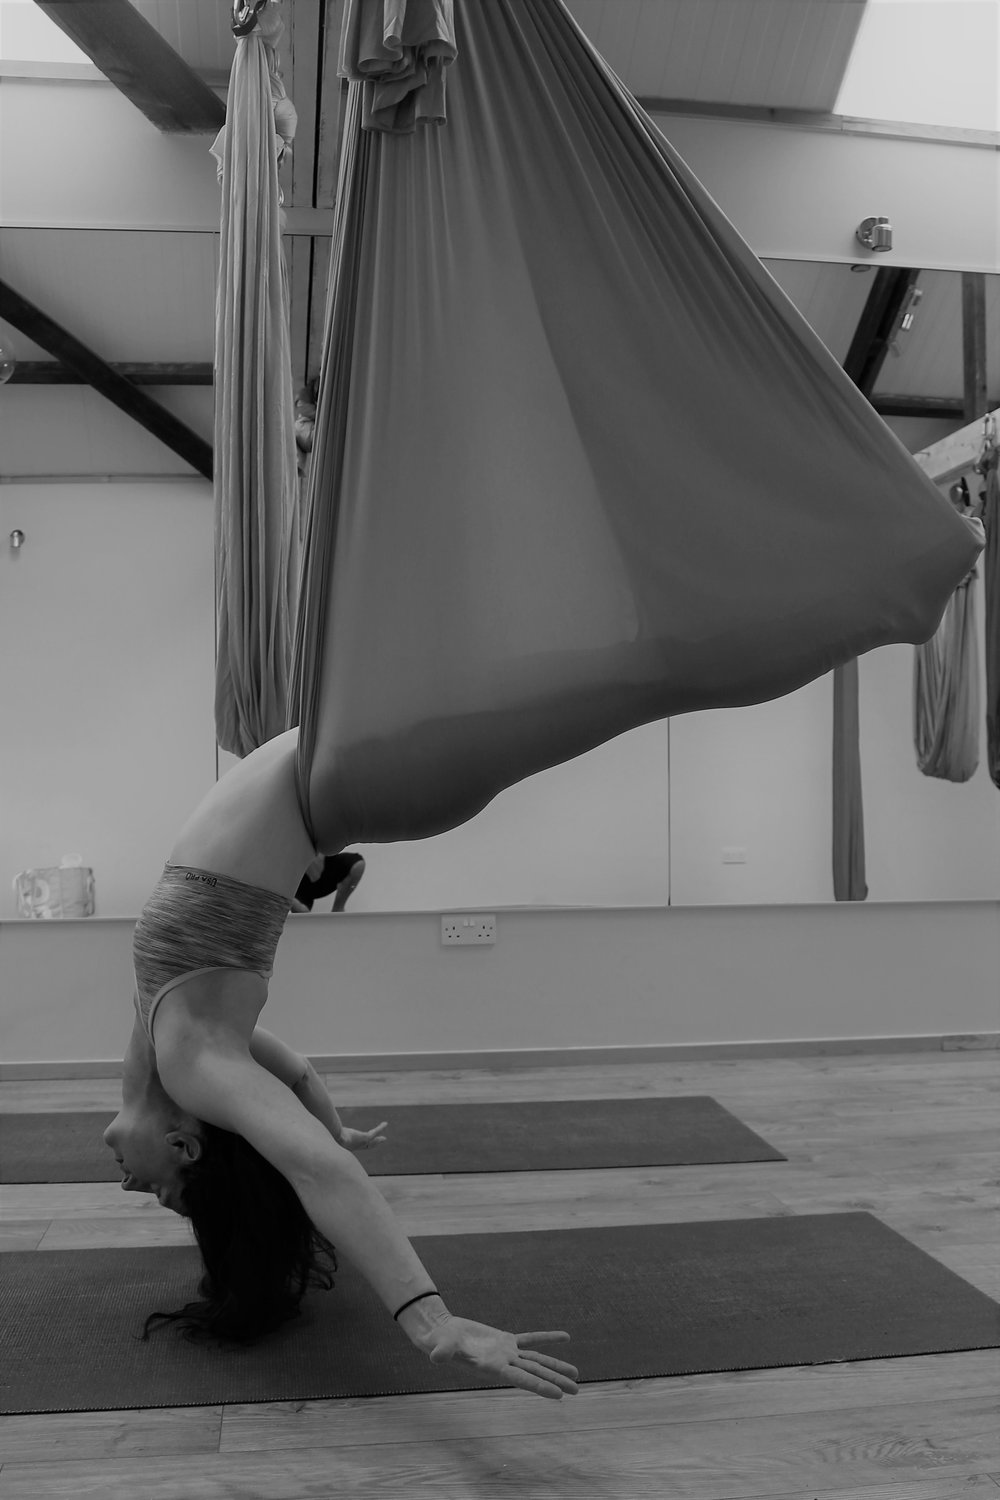 Class times - Classes take place at The Yoga Shed, The Square (Behind Pages Newsagent), Wickham, PO17 5JNTuesdays 1:45-2:45pm Aerial Yoga FlowMonthly Saturdays Beginners and FlowMonthly Sundays Beginners and FlowBooking is essential, please click hereCost £10Private class for up to 7 people £60